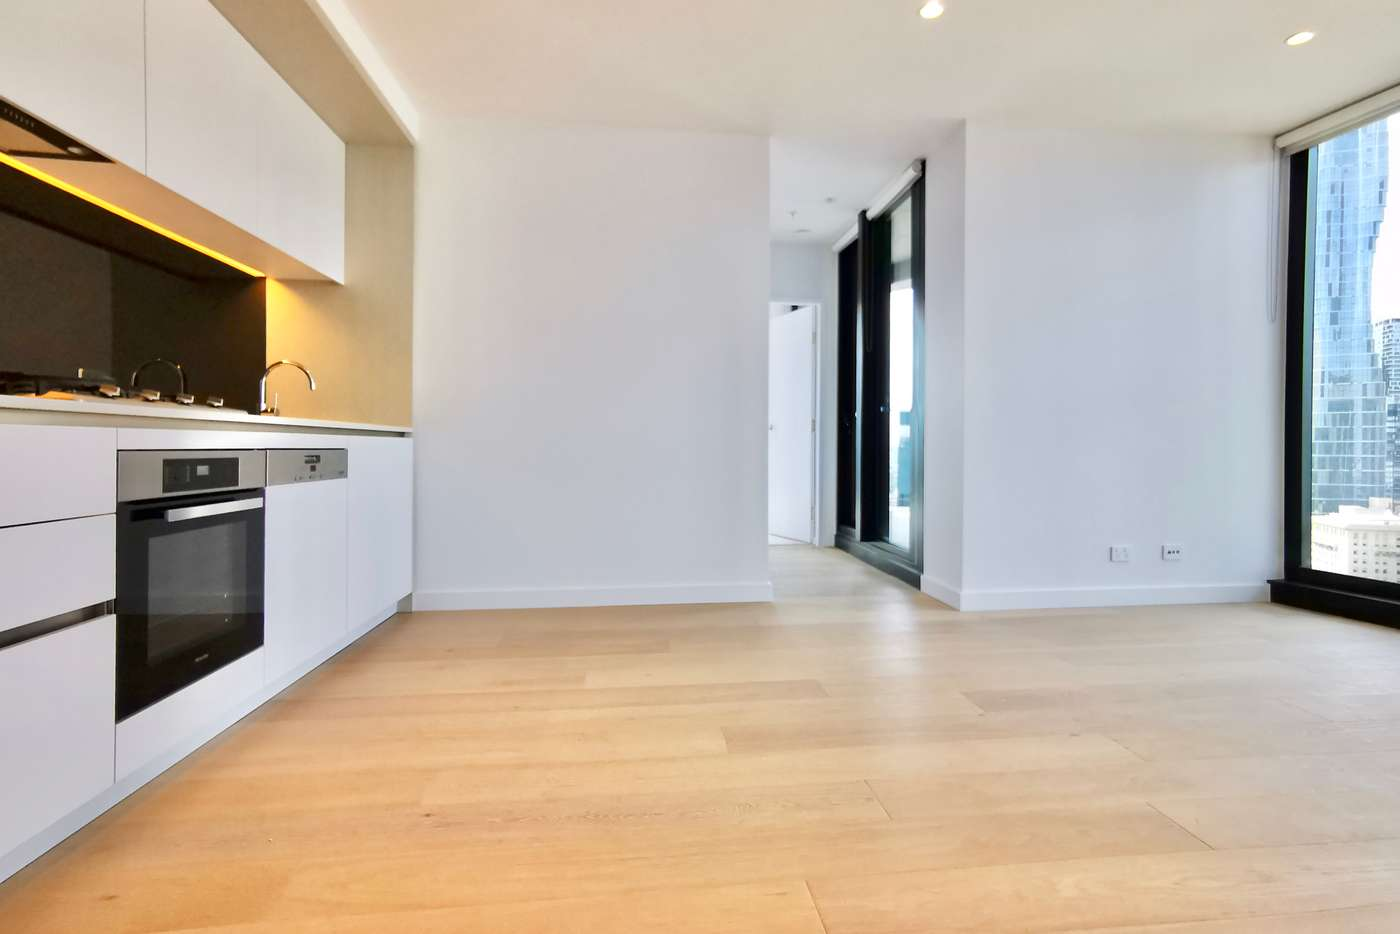 Main view of Homely apartment listing, 2102/628 Flinders Street, Docklands VIC 3008